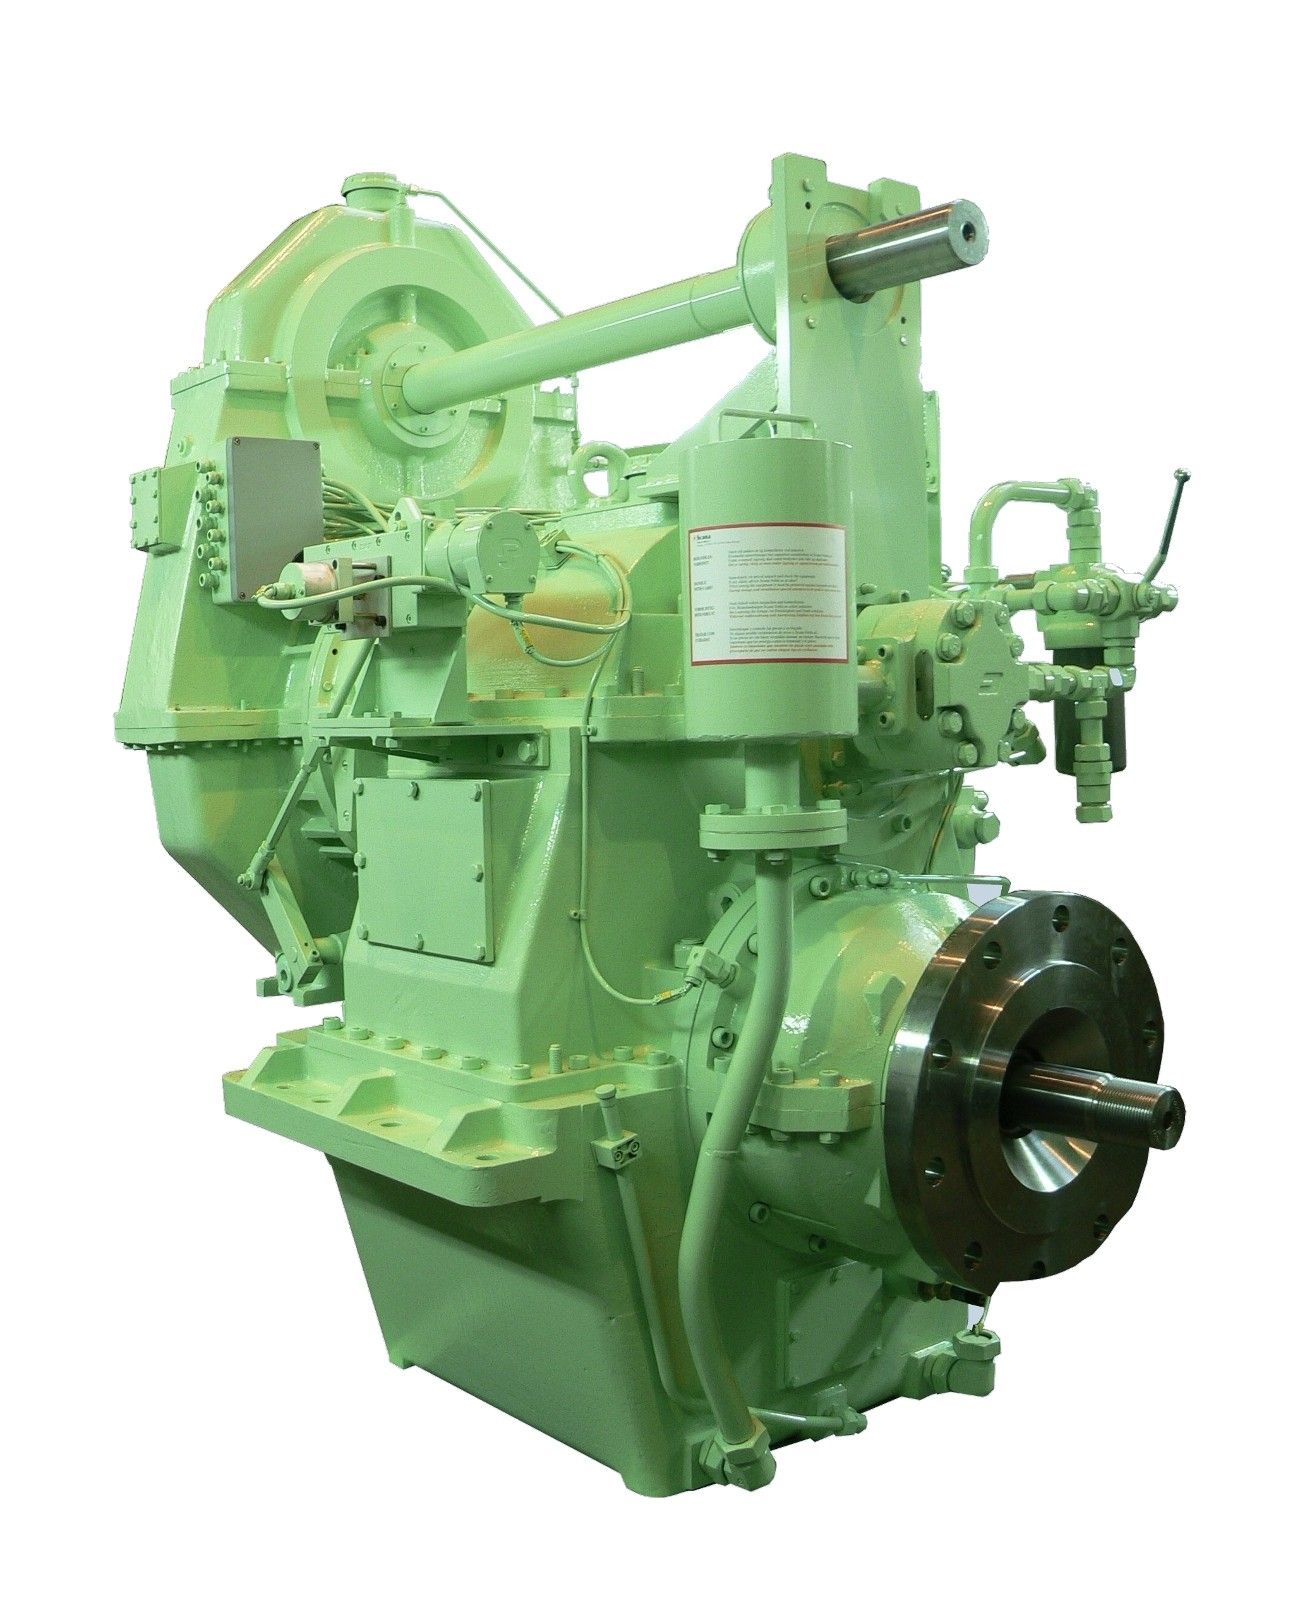 Hydraulic Drive Gearboxes : Gearbox for ship hydraulic controlled propeller drive wikov